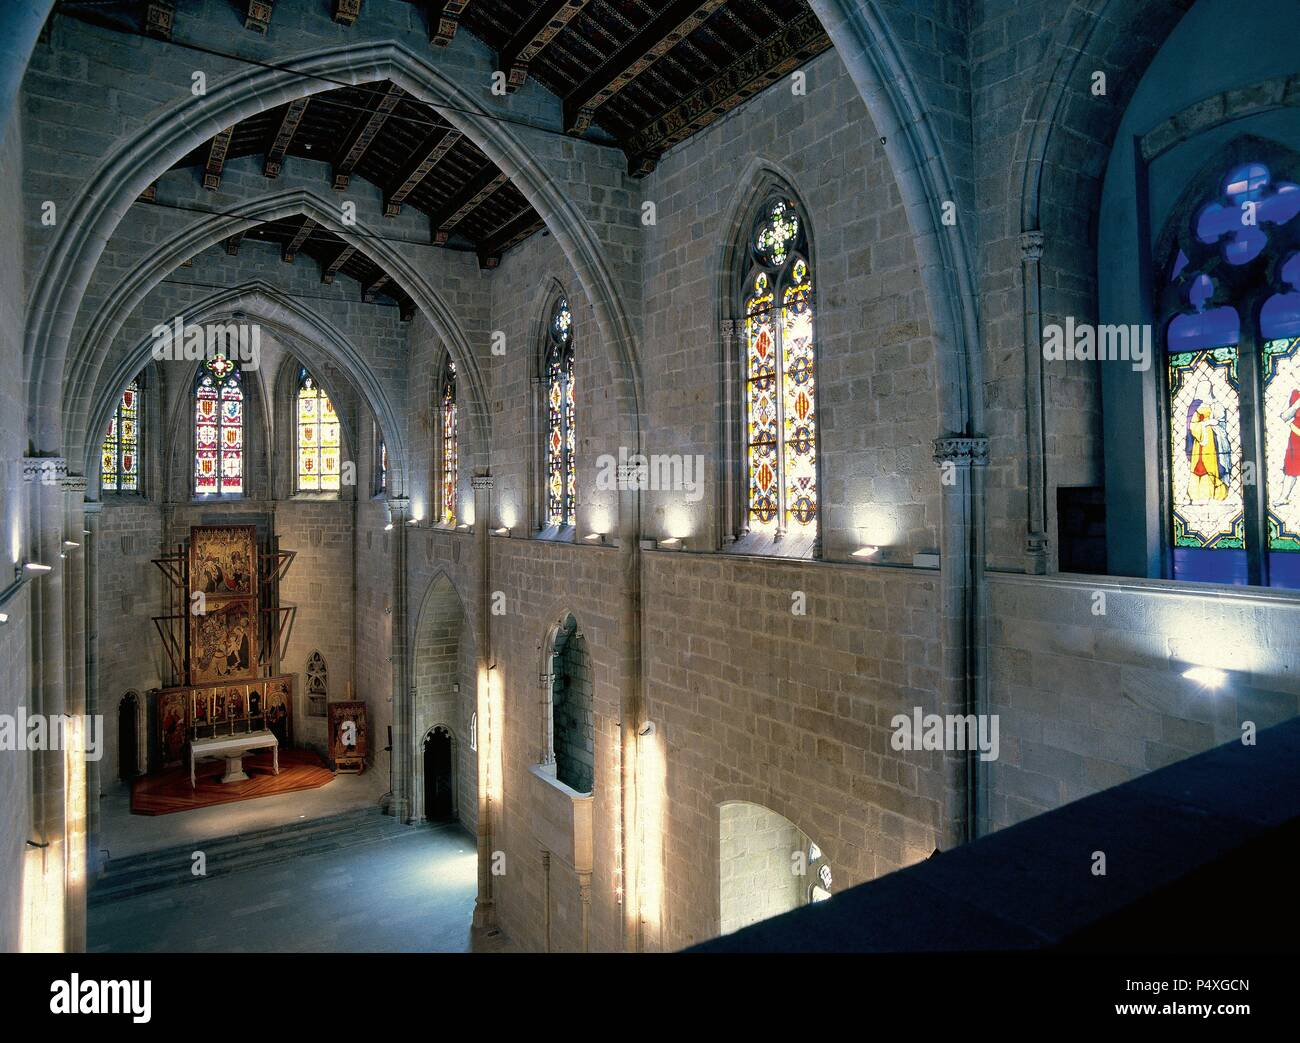 Spain. Barcelona. The Chapel of Santa Agata. Gothic building. Year 1302. The master builder Riquer Bertran was commissioned to start construction, followed in 1316 by Jaume and later by Pere d'Olivera. Inside. - Stock Image